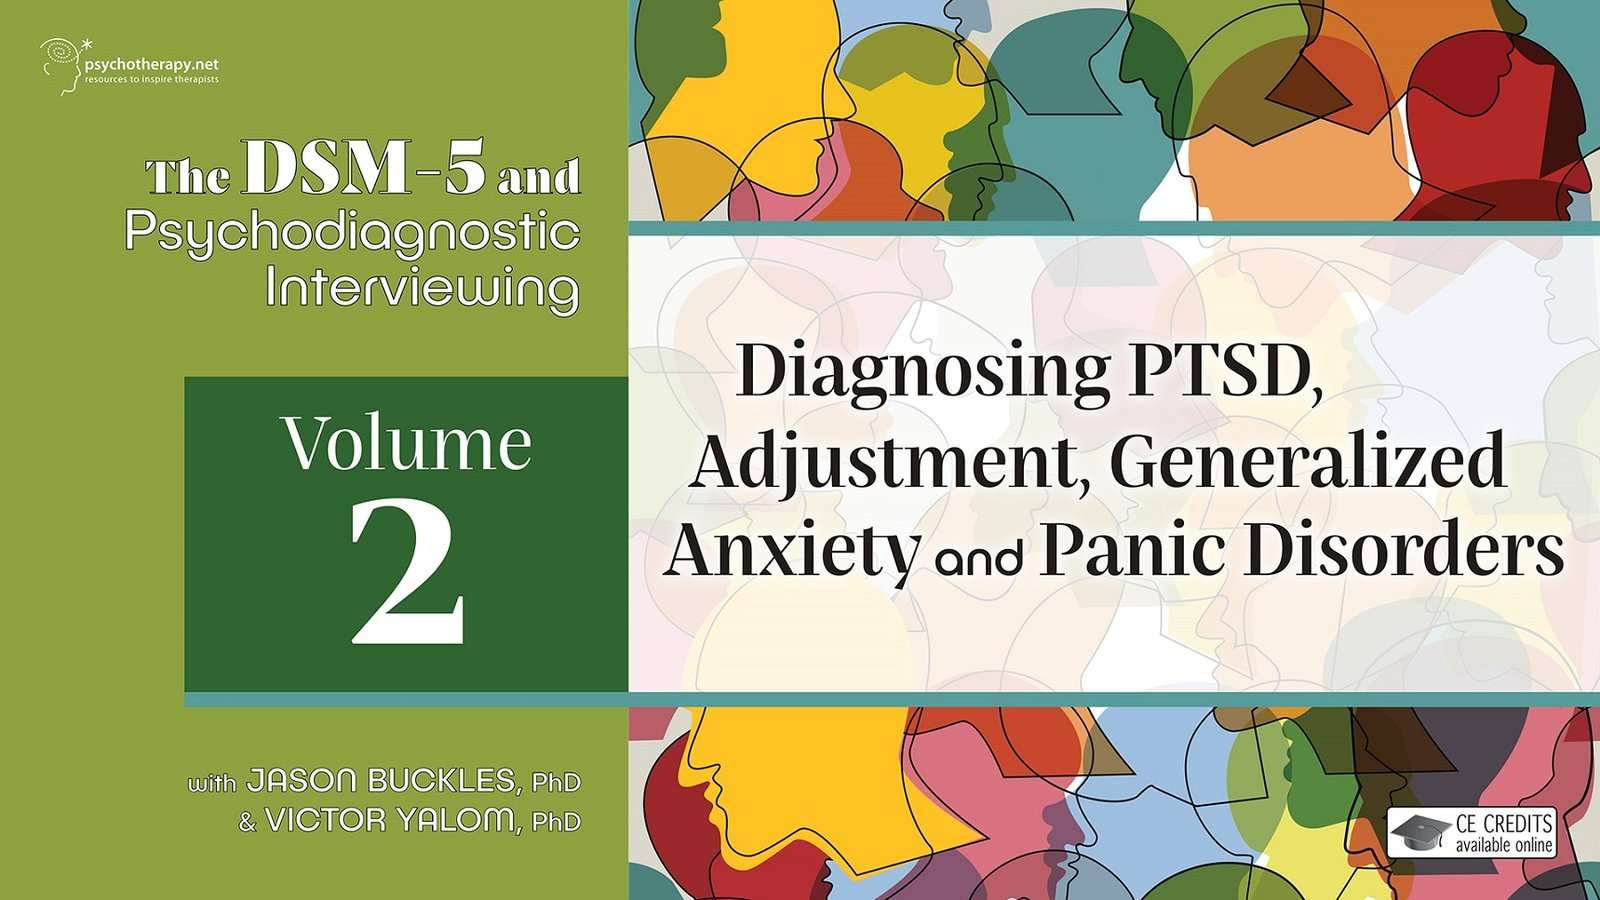 Diagnosing PTSD, Adjustment, Generalized Anxiety and Panic Disorders